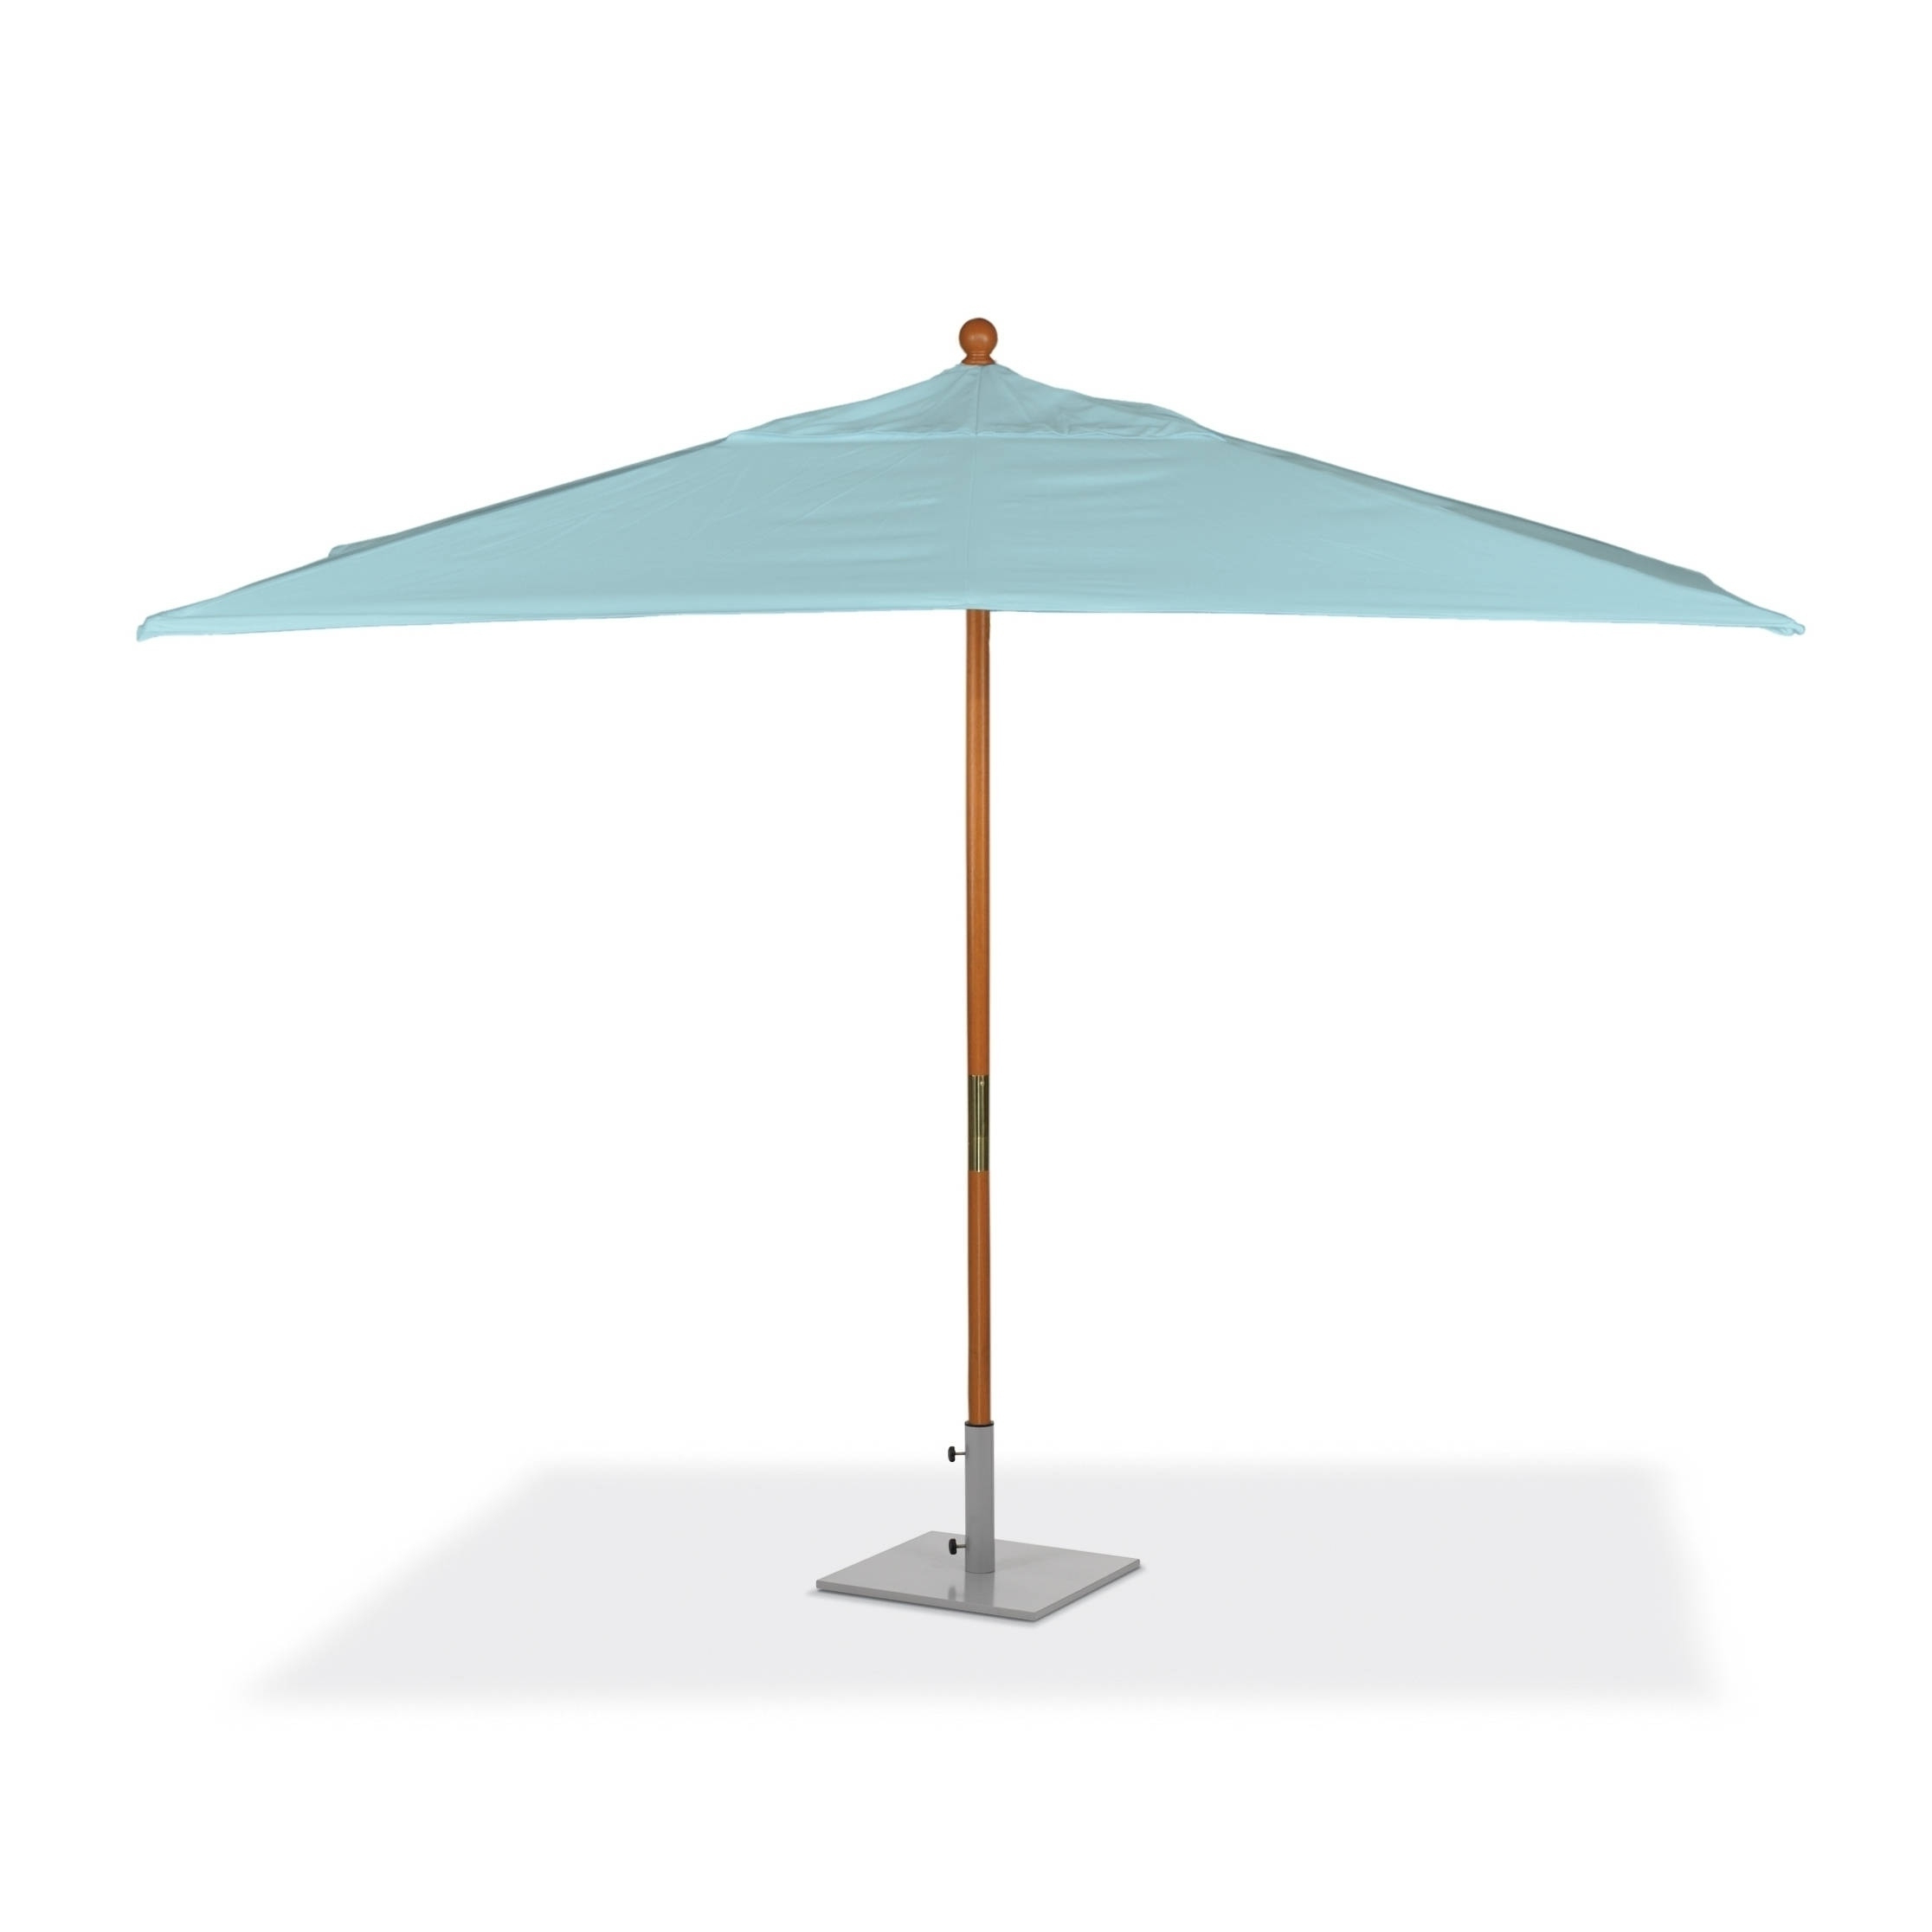 Oxford Garden 10 Feet Rectangular Mineral Blue Sunbrella Fabric Shade Market Umbrella With Solid Tropical Hardwood Frame With Regard To Best And Newest Solid Rectangular Market Umbrellas (View 17 of 20)